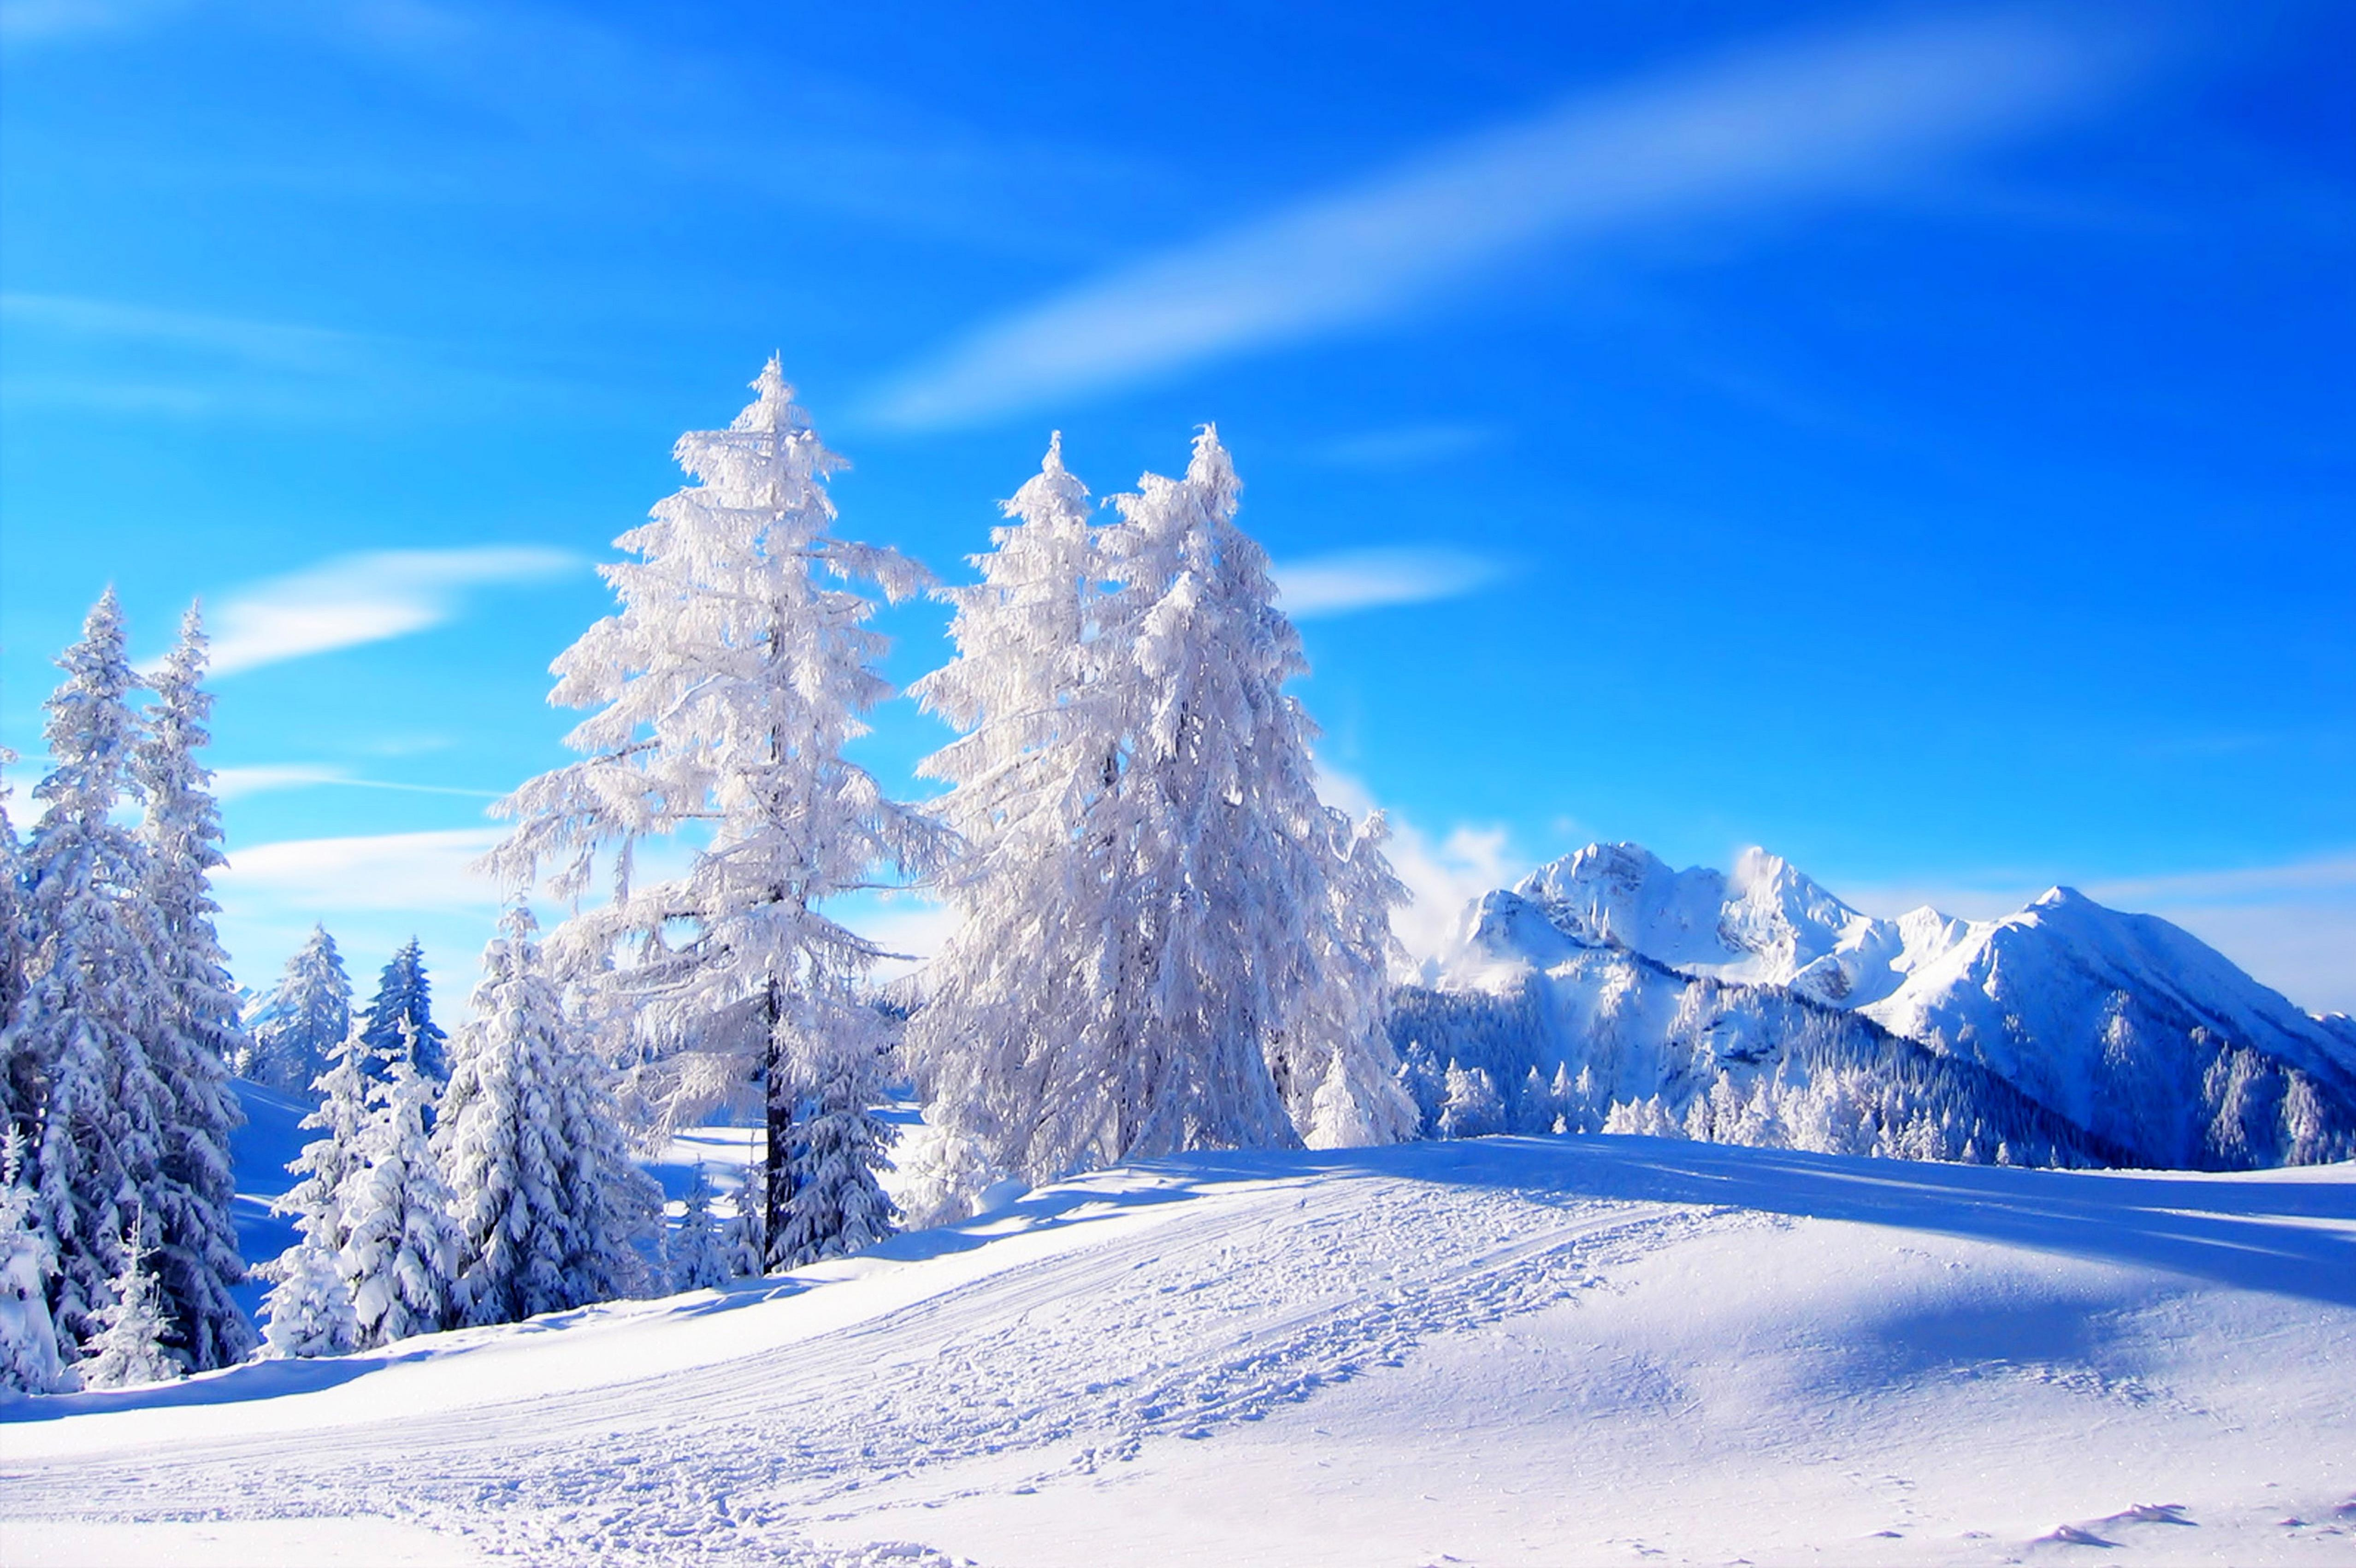 Winter Snow Backgrounds 5111x3402